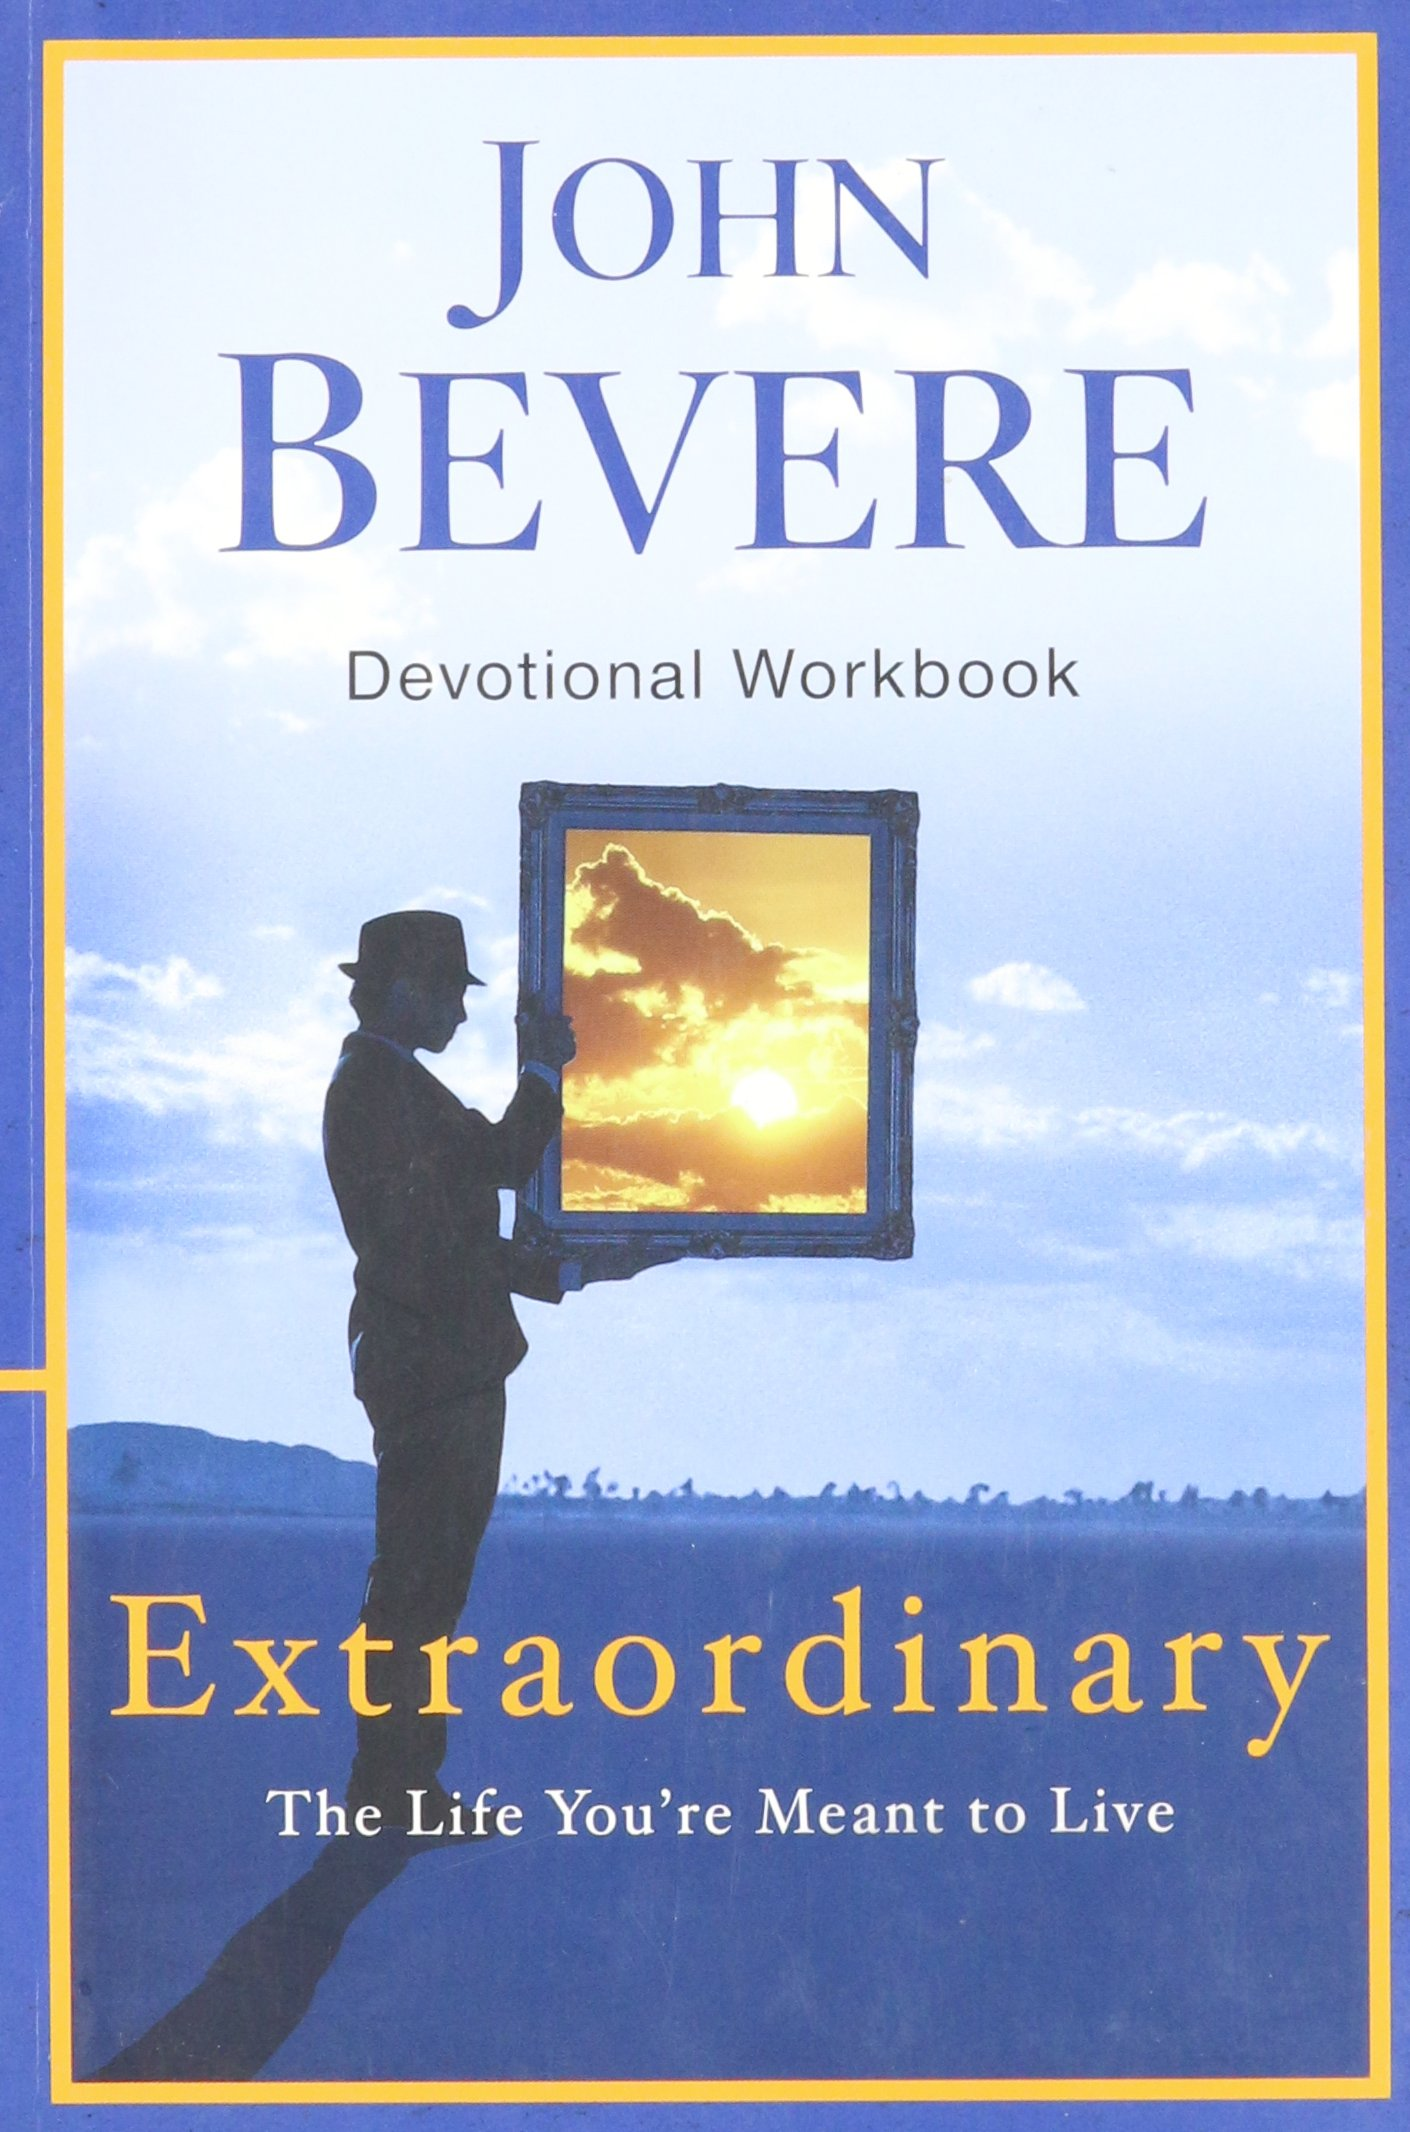 Pdf 7792 Under Cover Workbook John Bevere Answers 2019 Ebook Library